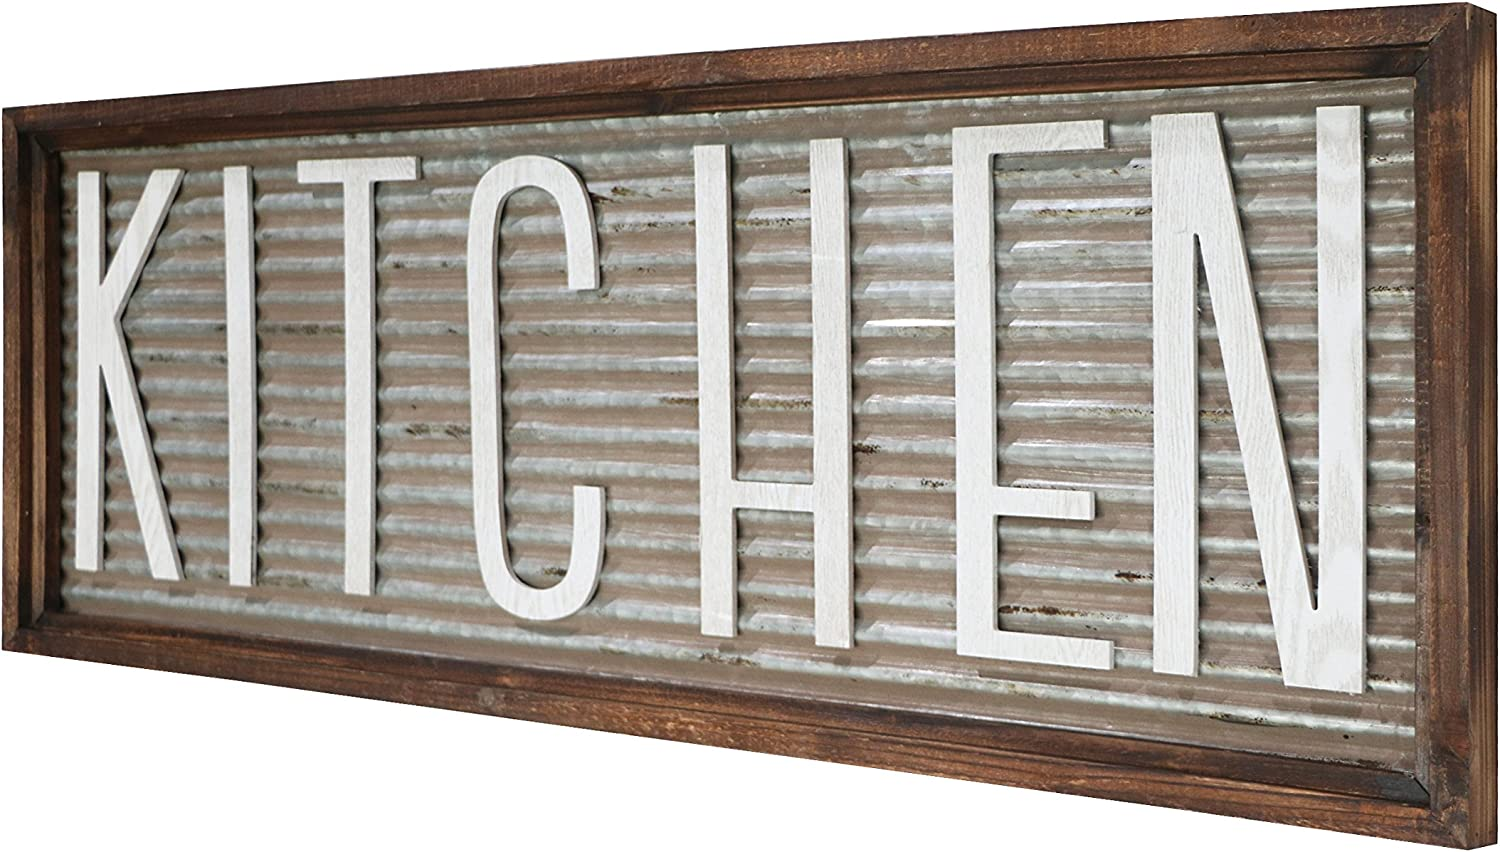 "Kitchen Wall Decor Sign, Rustic Vintage Farmhouse Country Decoration for  Kitchen Wall, Counter, Door and Pantry 9"" x 9"""